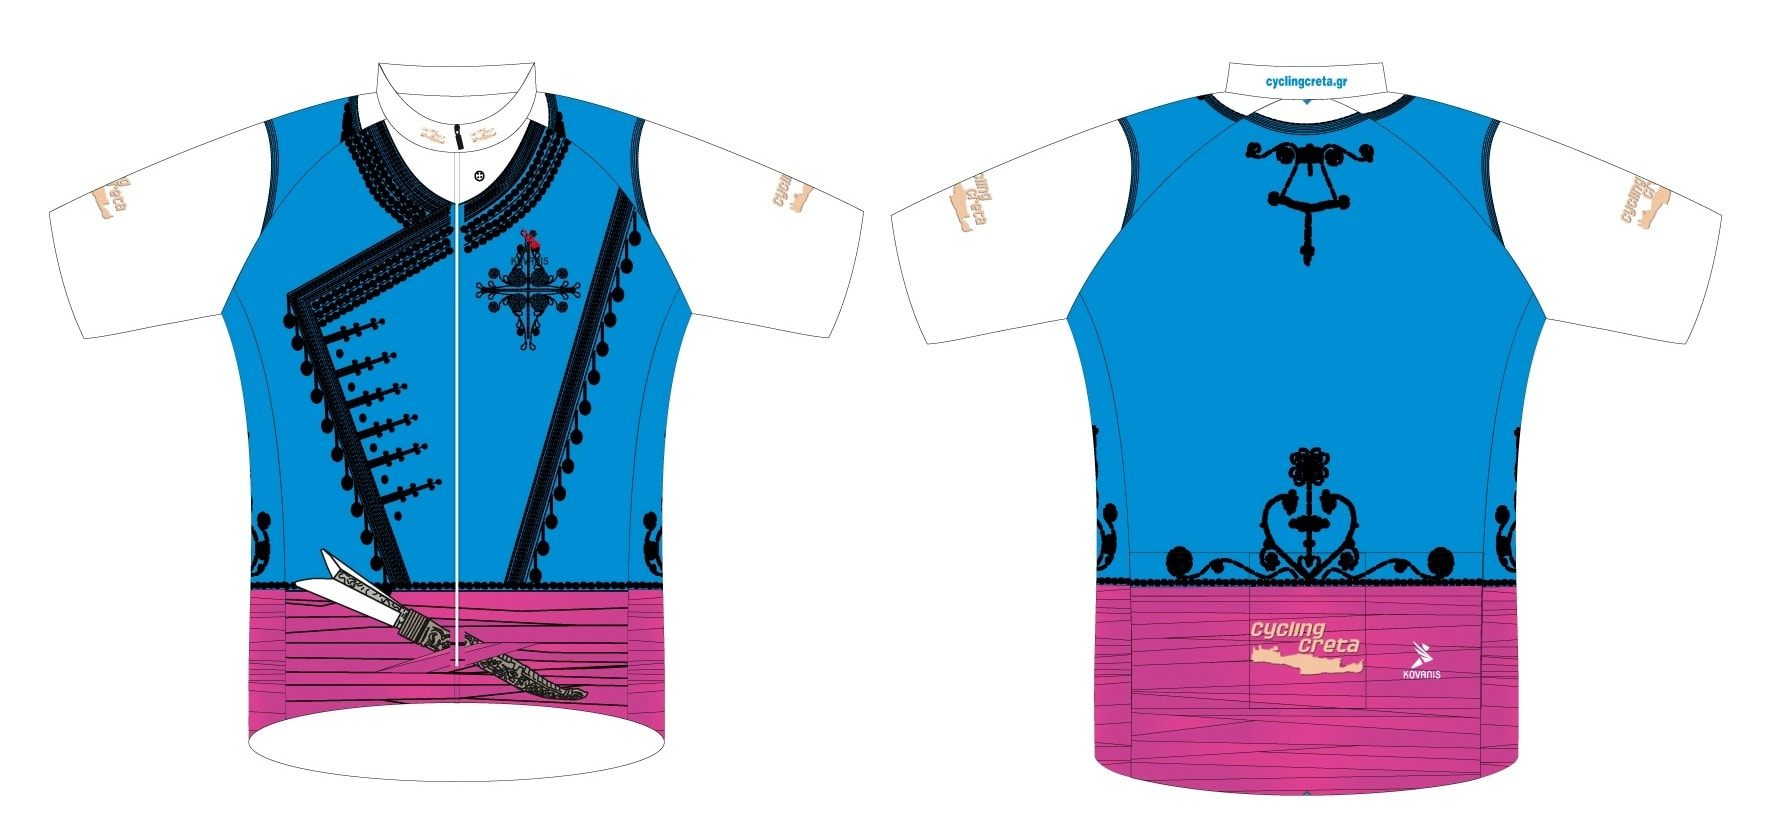 cyclingcreta jersey salvari